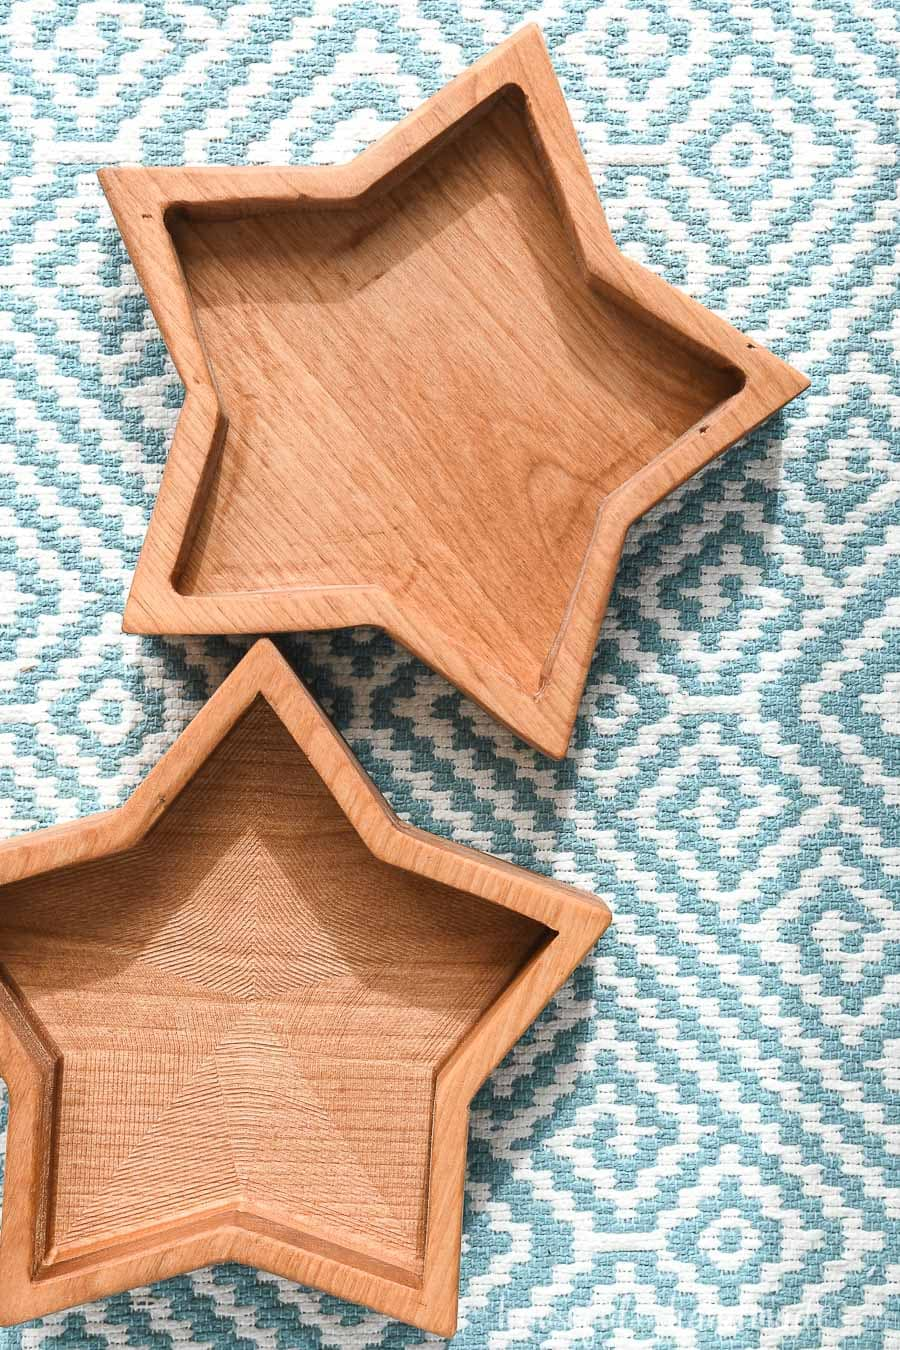 Two wooden star bowls on a blue and white placemat